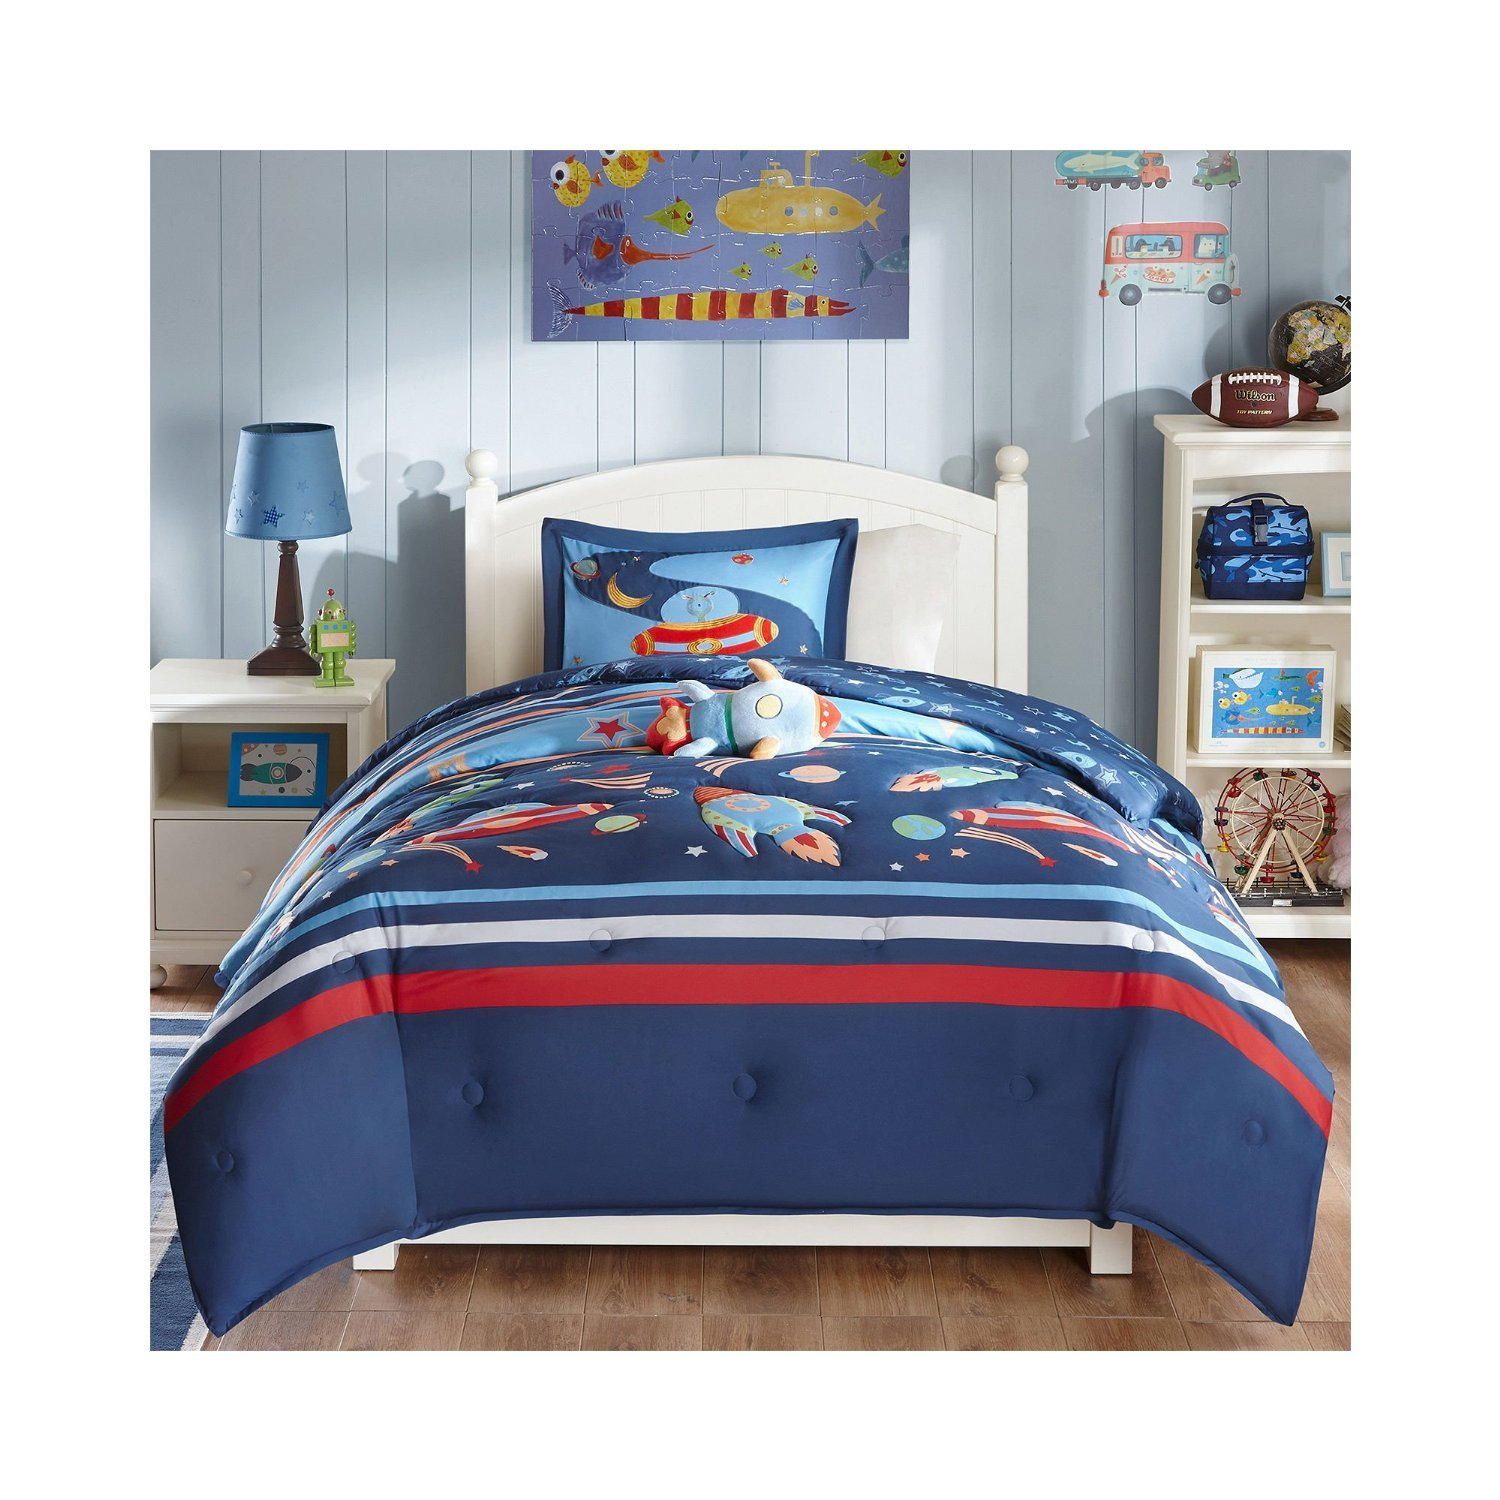 Mizone Kids Space Cadet 4 Piece Comforter Set, Blue, Full/Queen